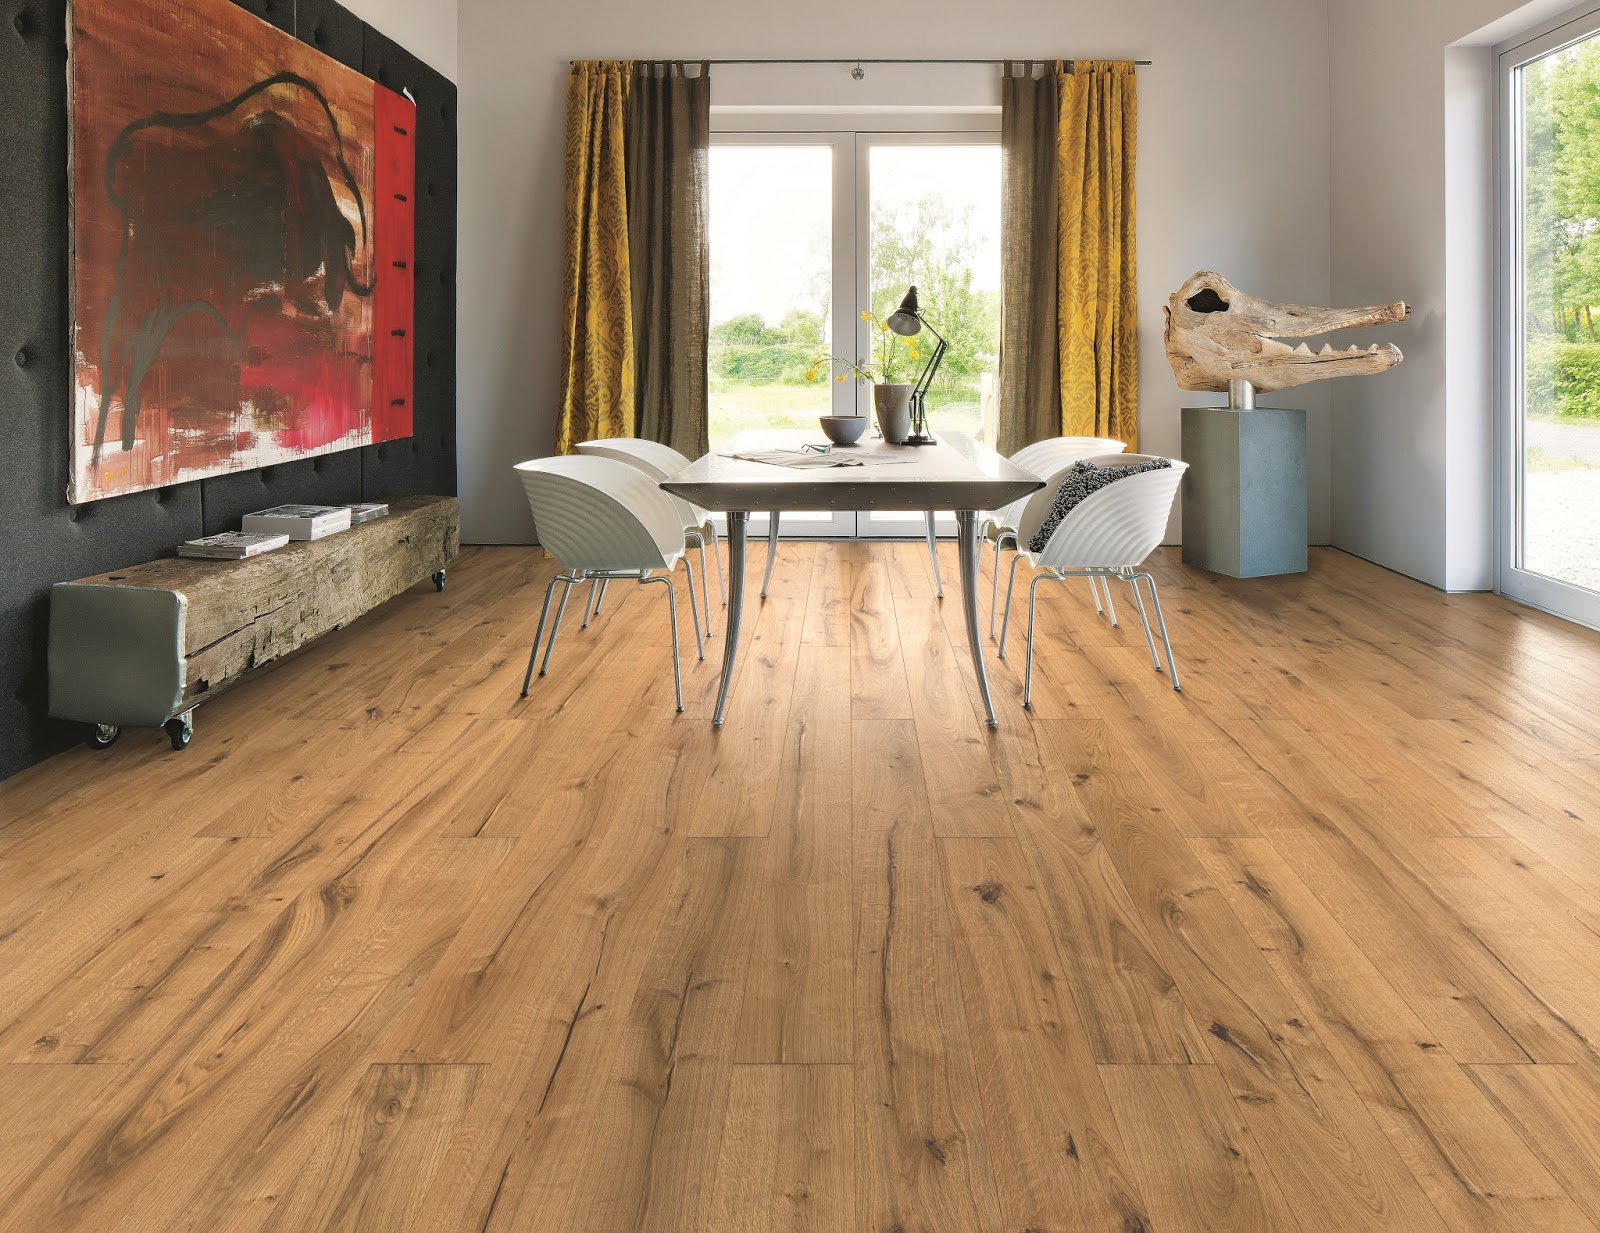 When should real wood floors be installed?